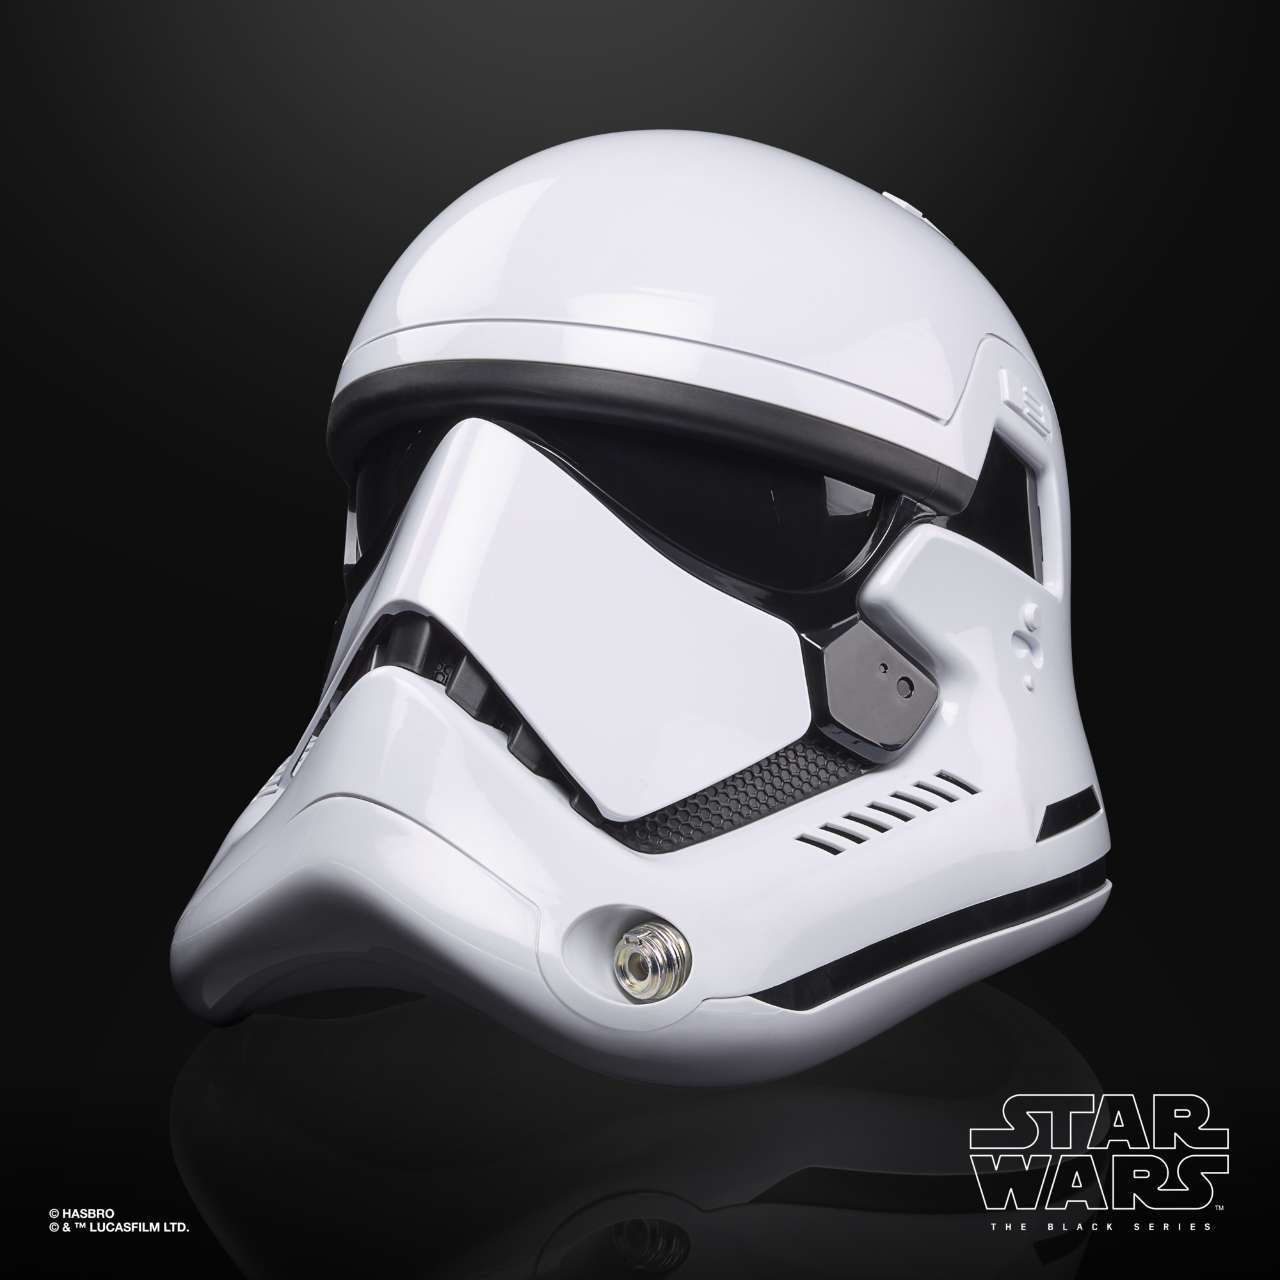 STAR WARS THE BLACK SERIES FIRST ORDER STORMTROOPER ELECTRONIC HELMET - oop (4)